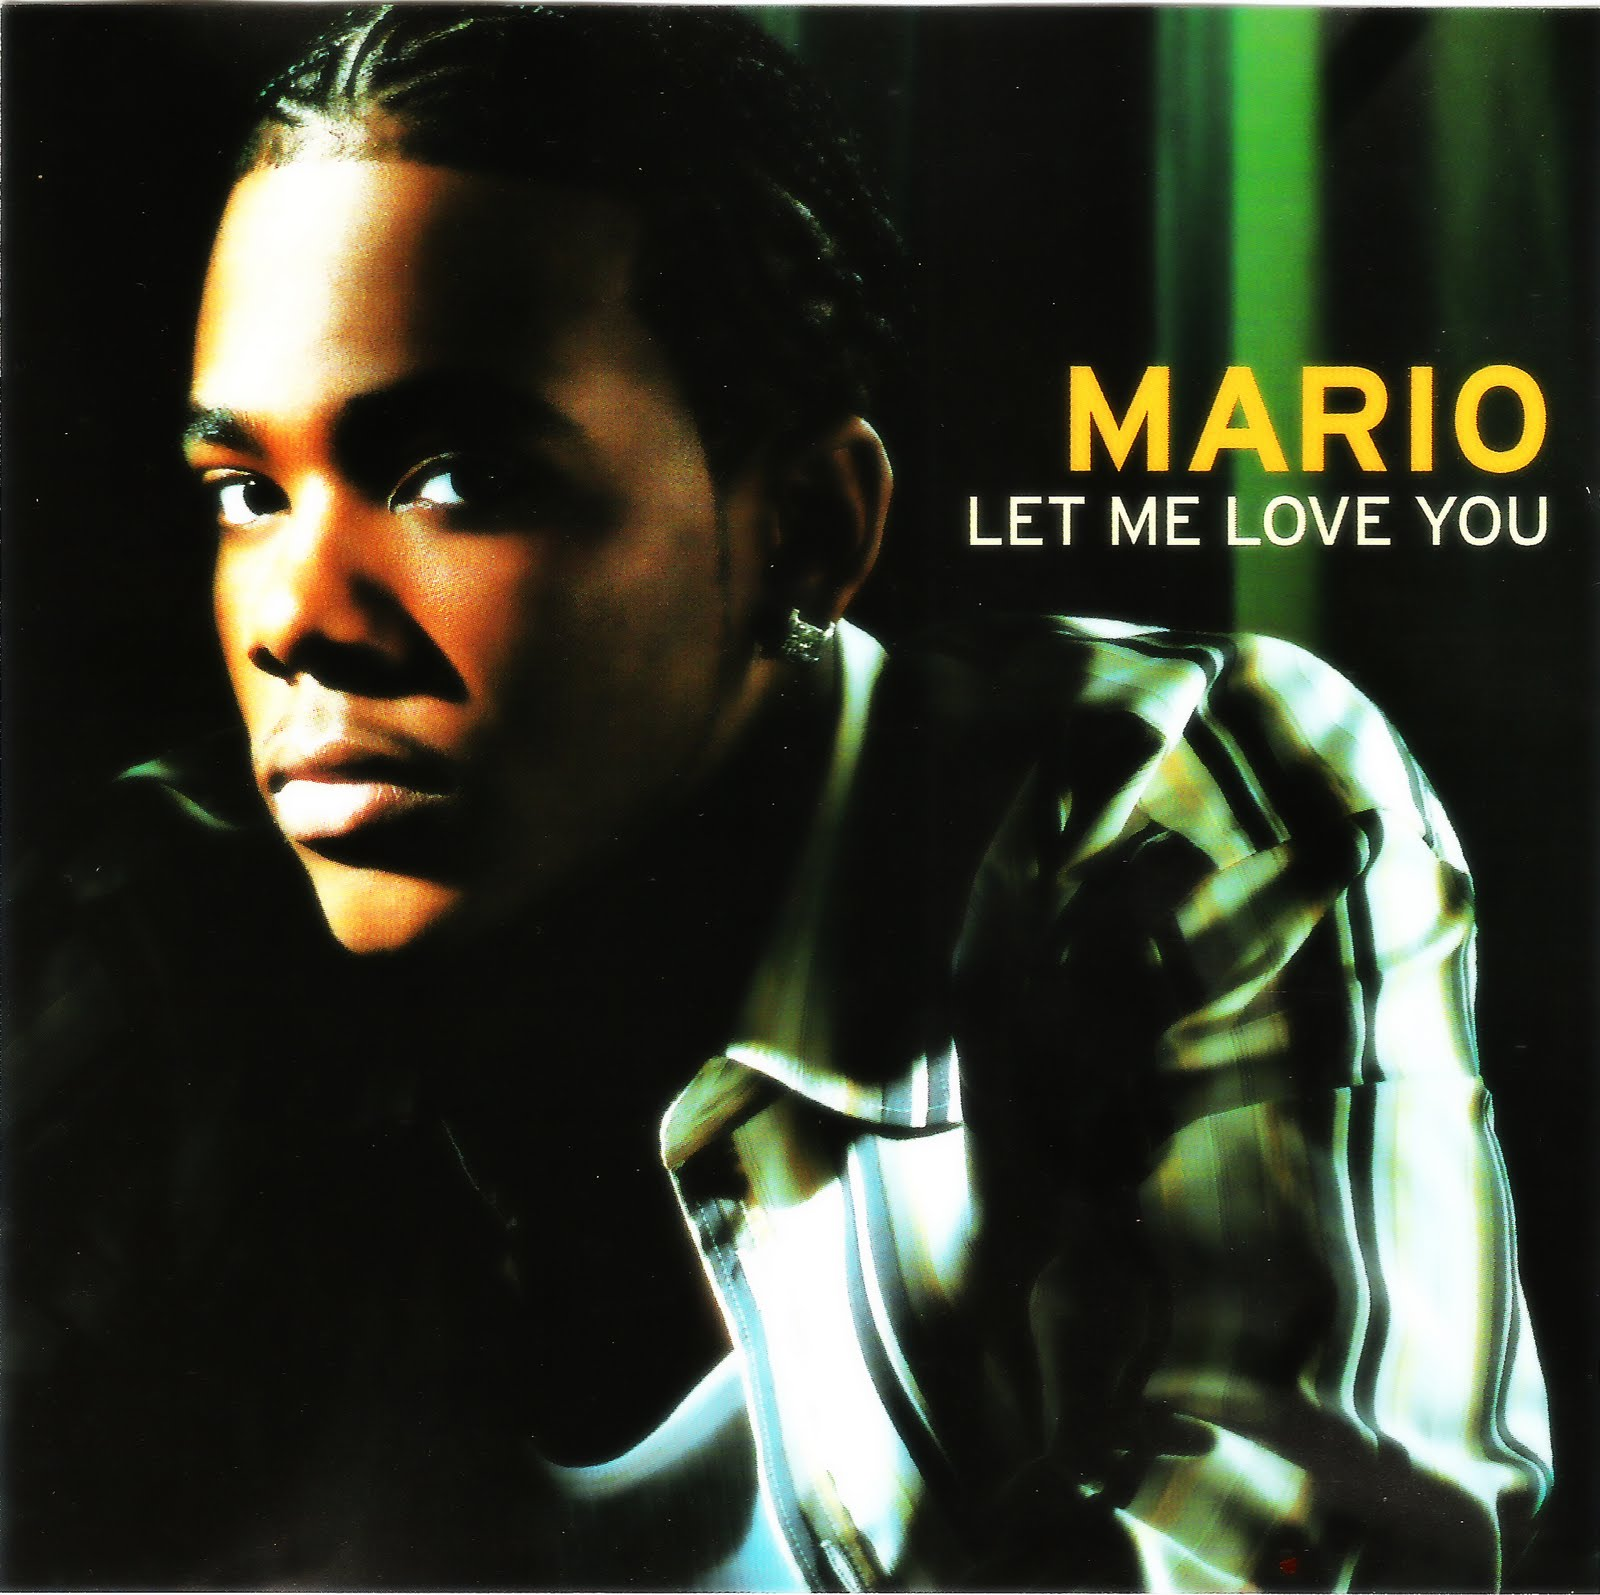 Let Me Love You Mp3 Song Download Duviya: Mario Let Me Love You